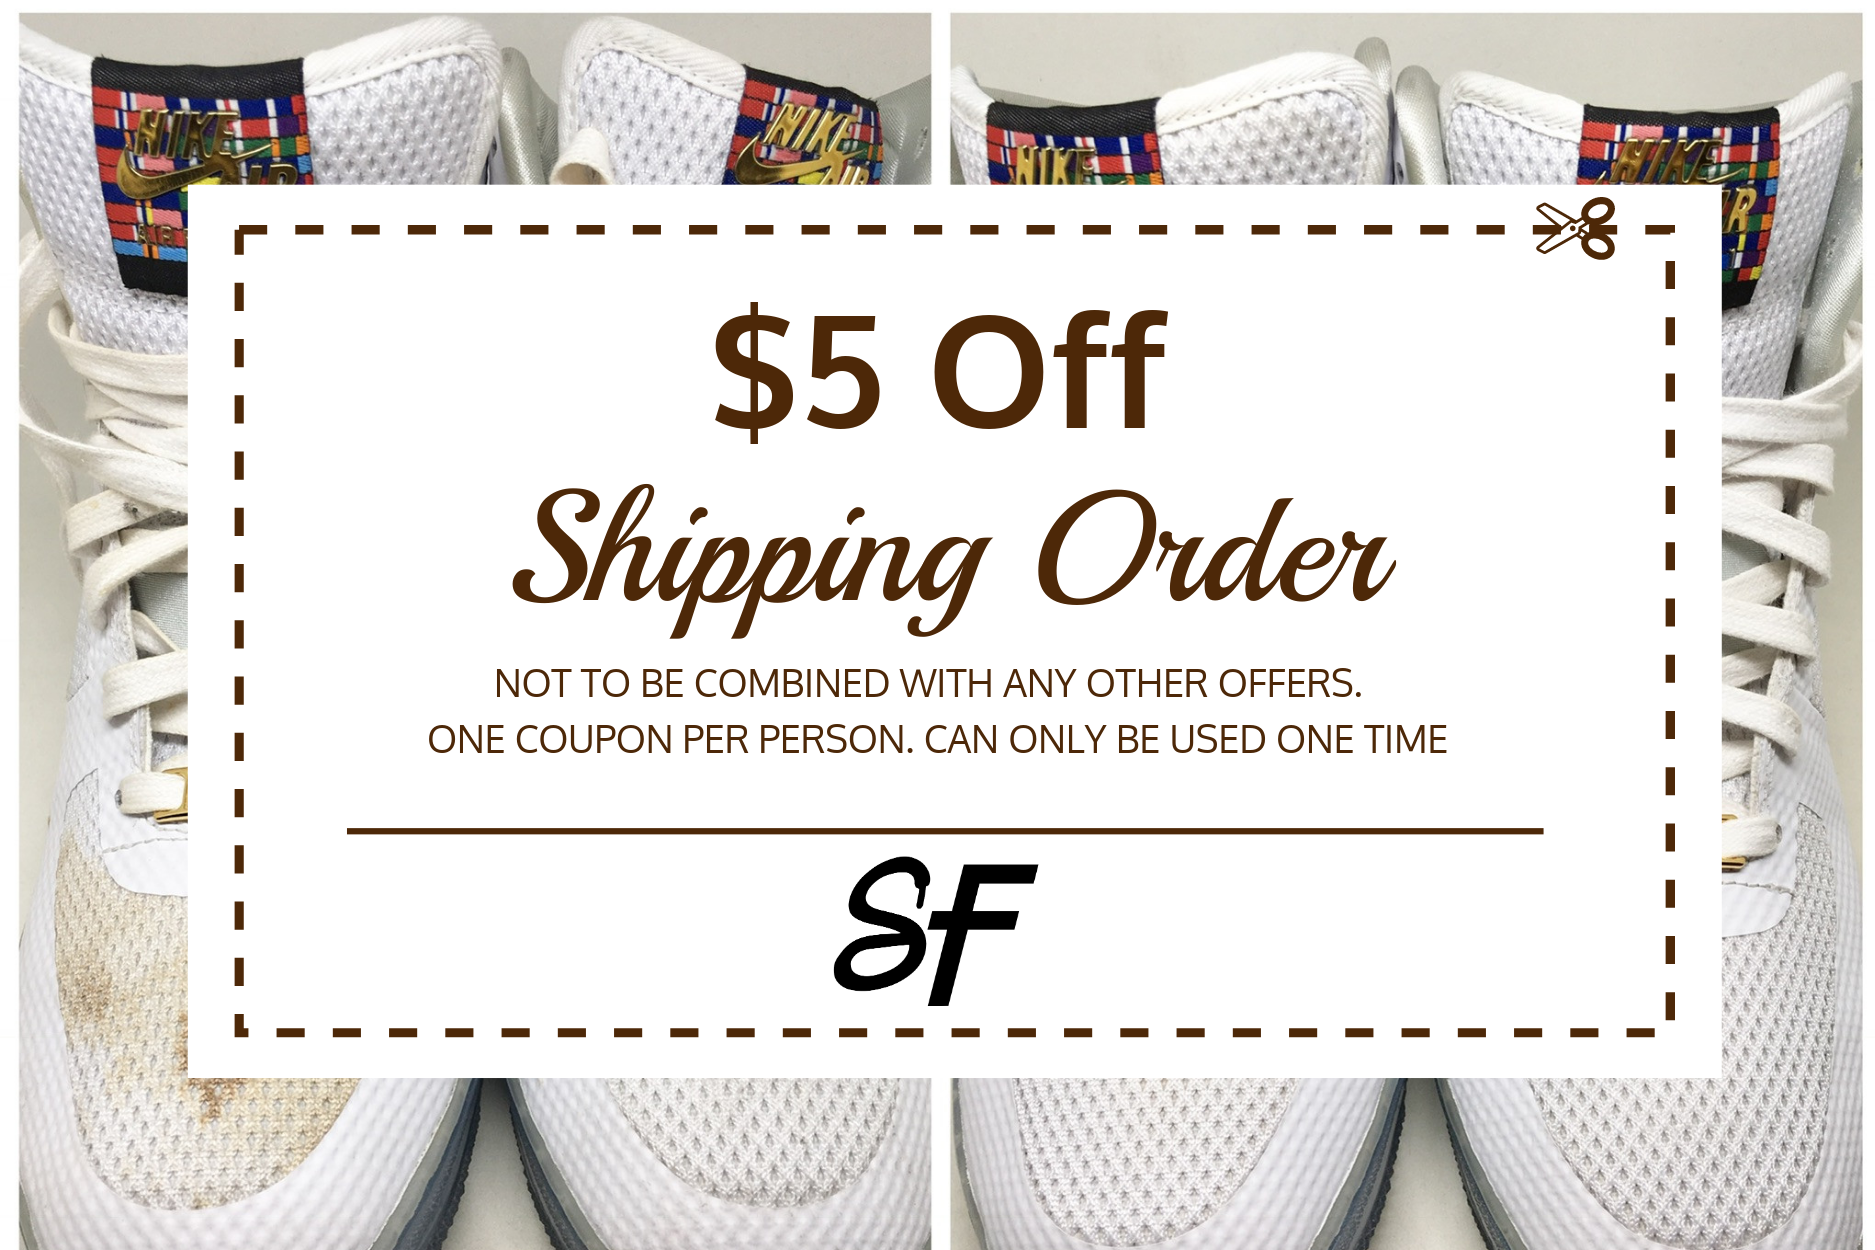 Please mention this promotion in the message section when completing the shipping form to get $5 Off your shipping price.